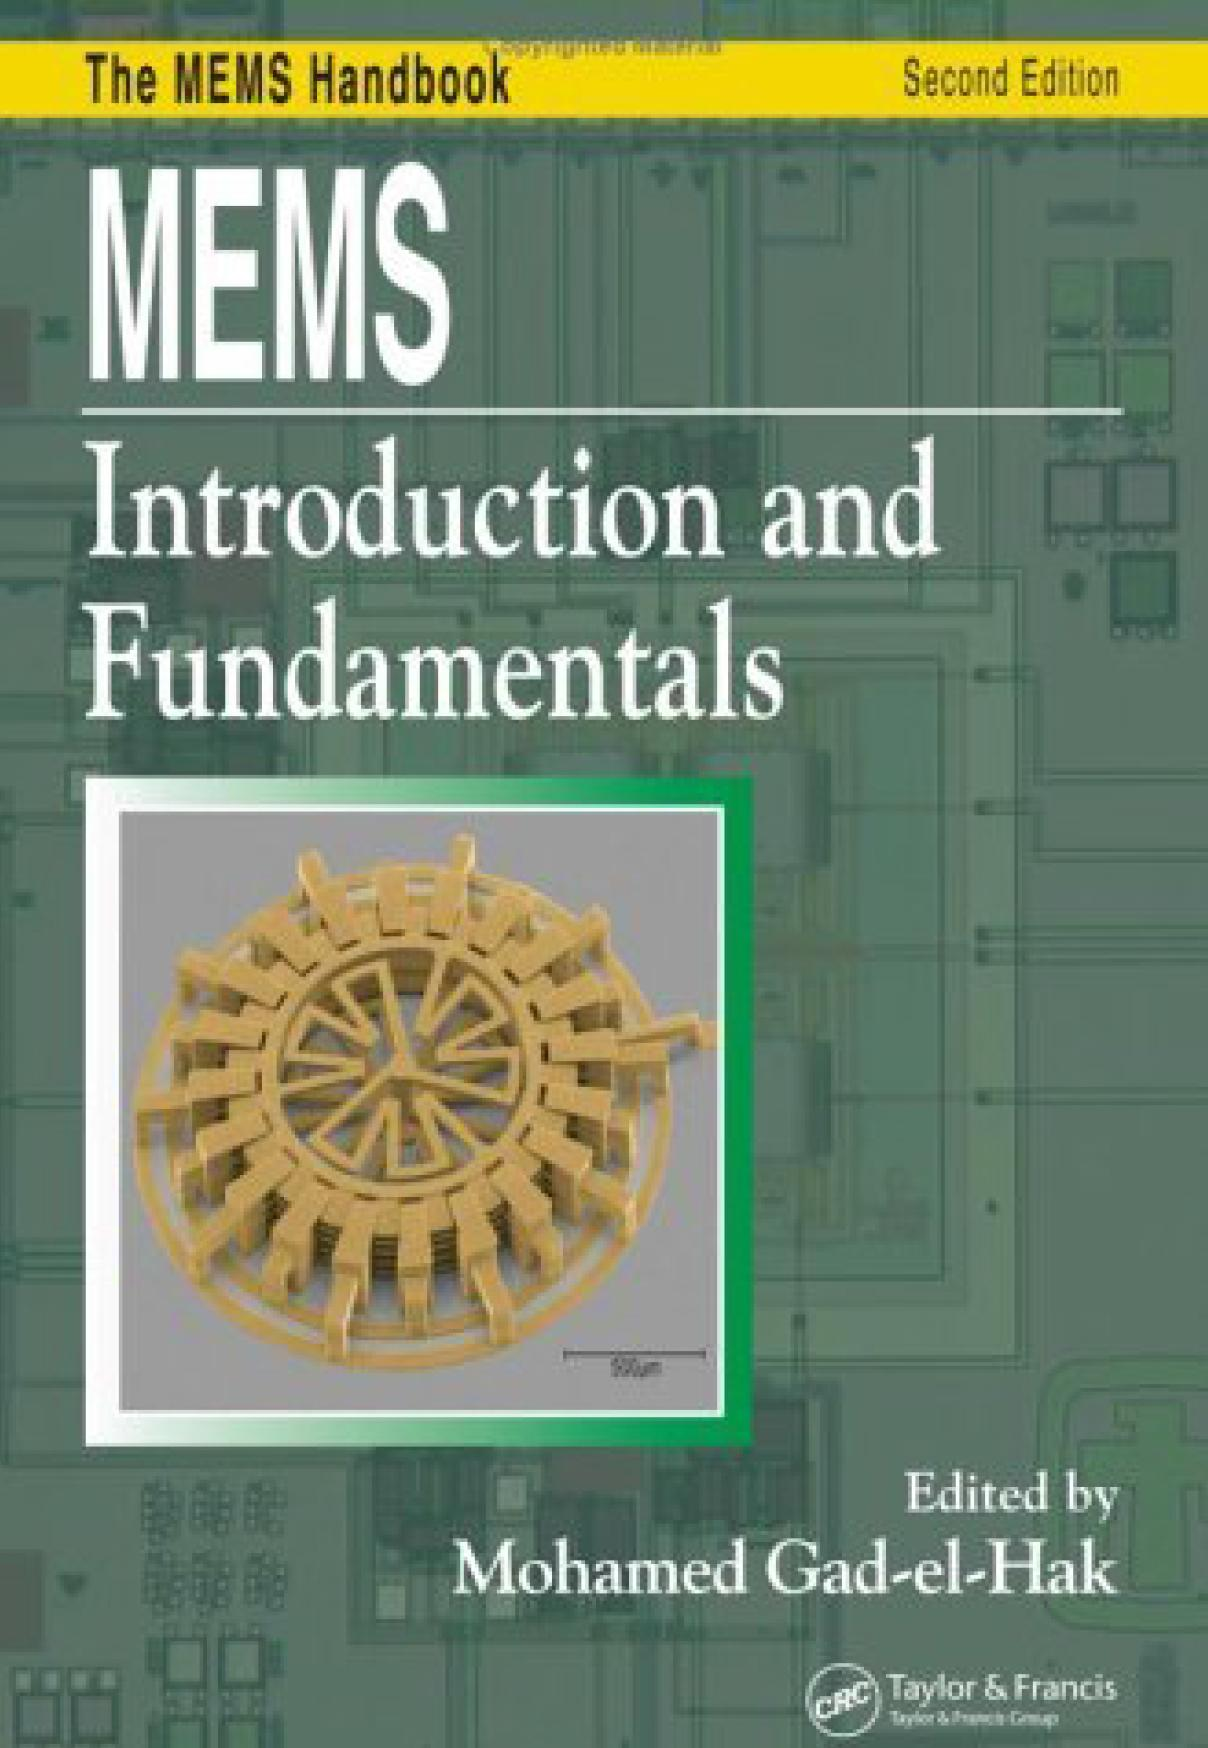 MEMS Introduction and Fundamentals